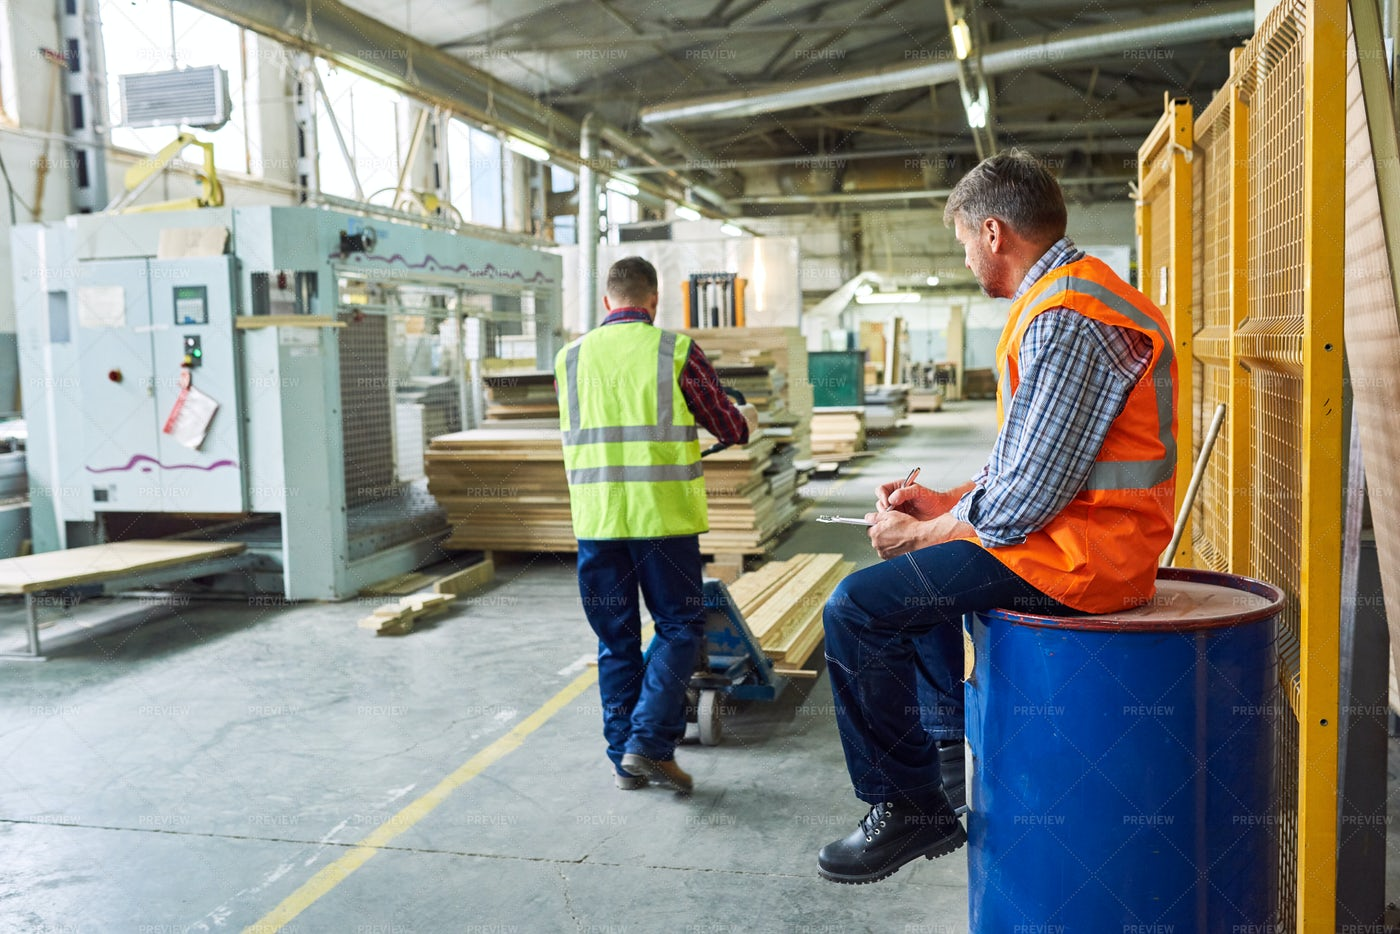 Work Process In Wood Warehouse: Stock Photos